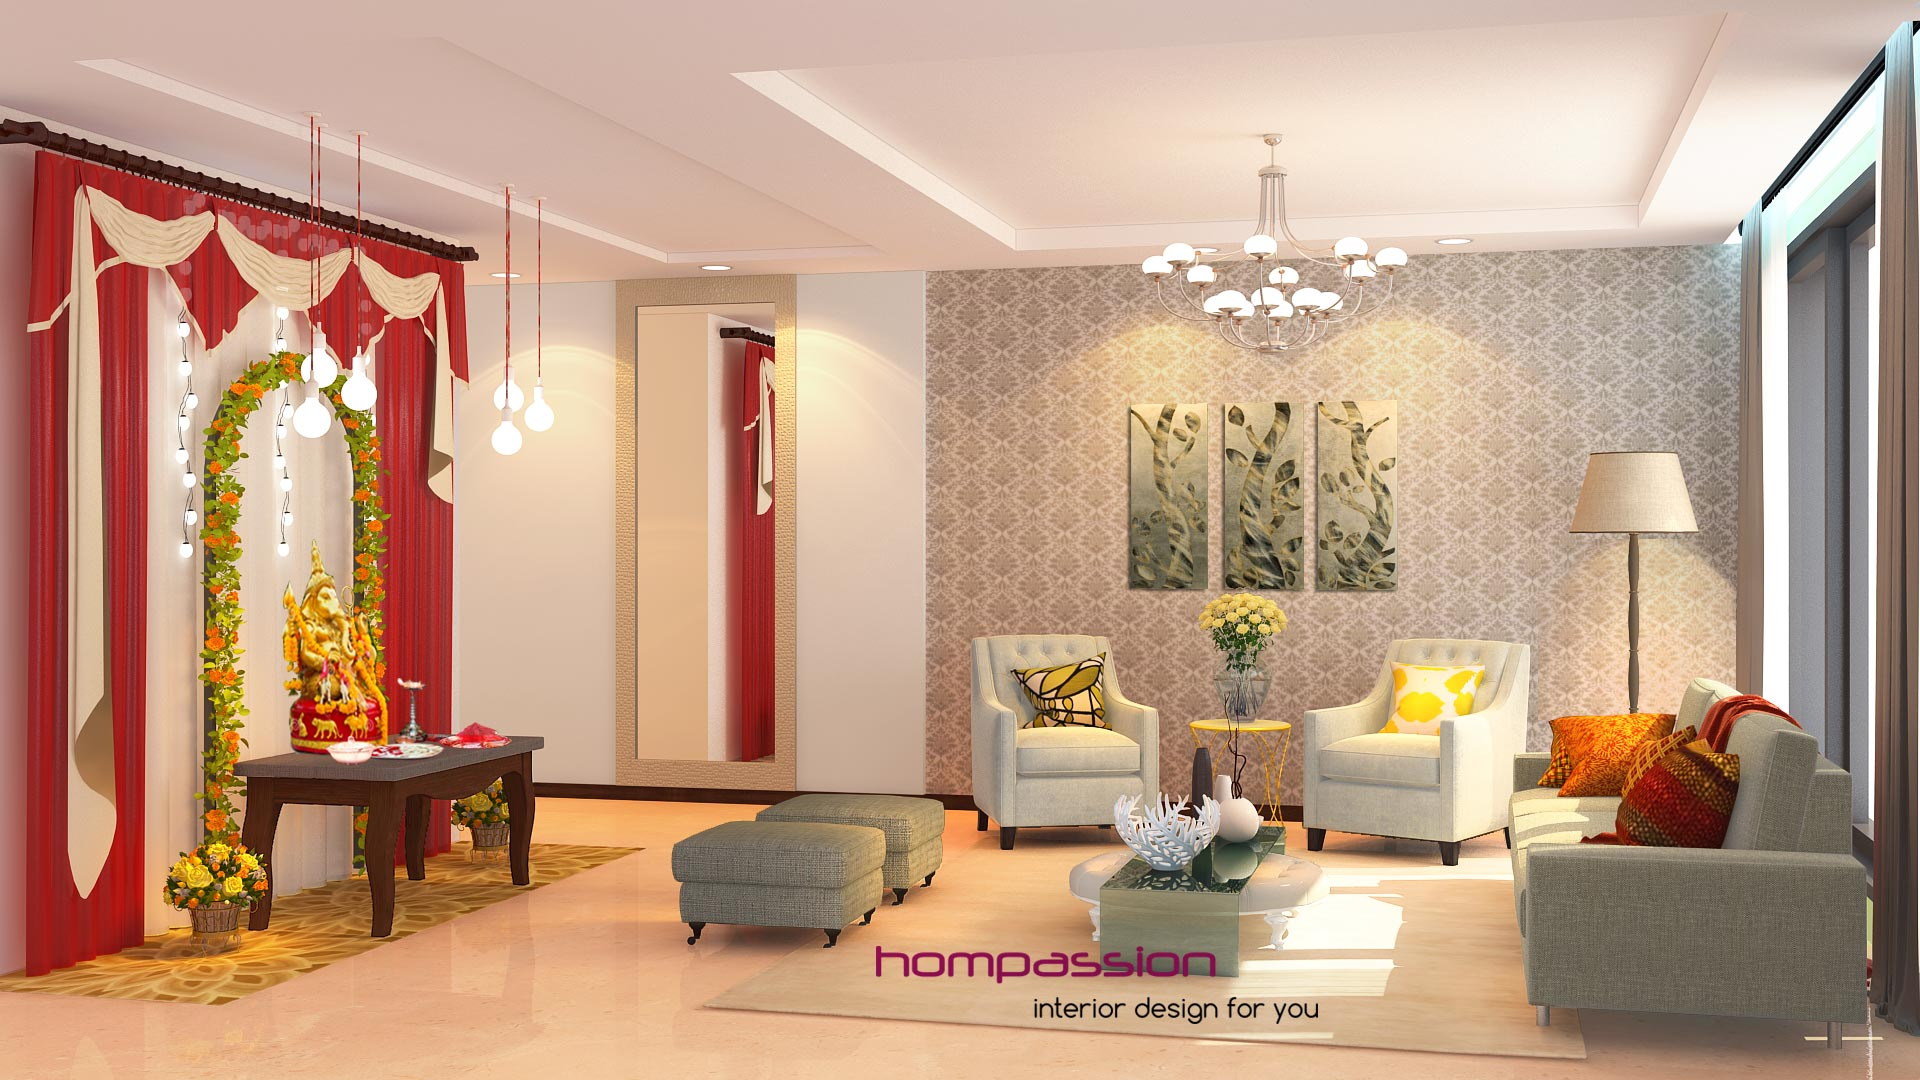 ganpati-at-home-living-room-interior-designers-in-mumbai-hompassion-1.jpg